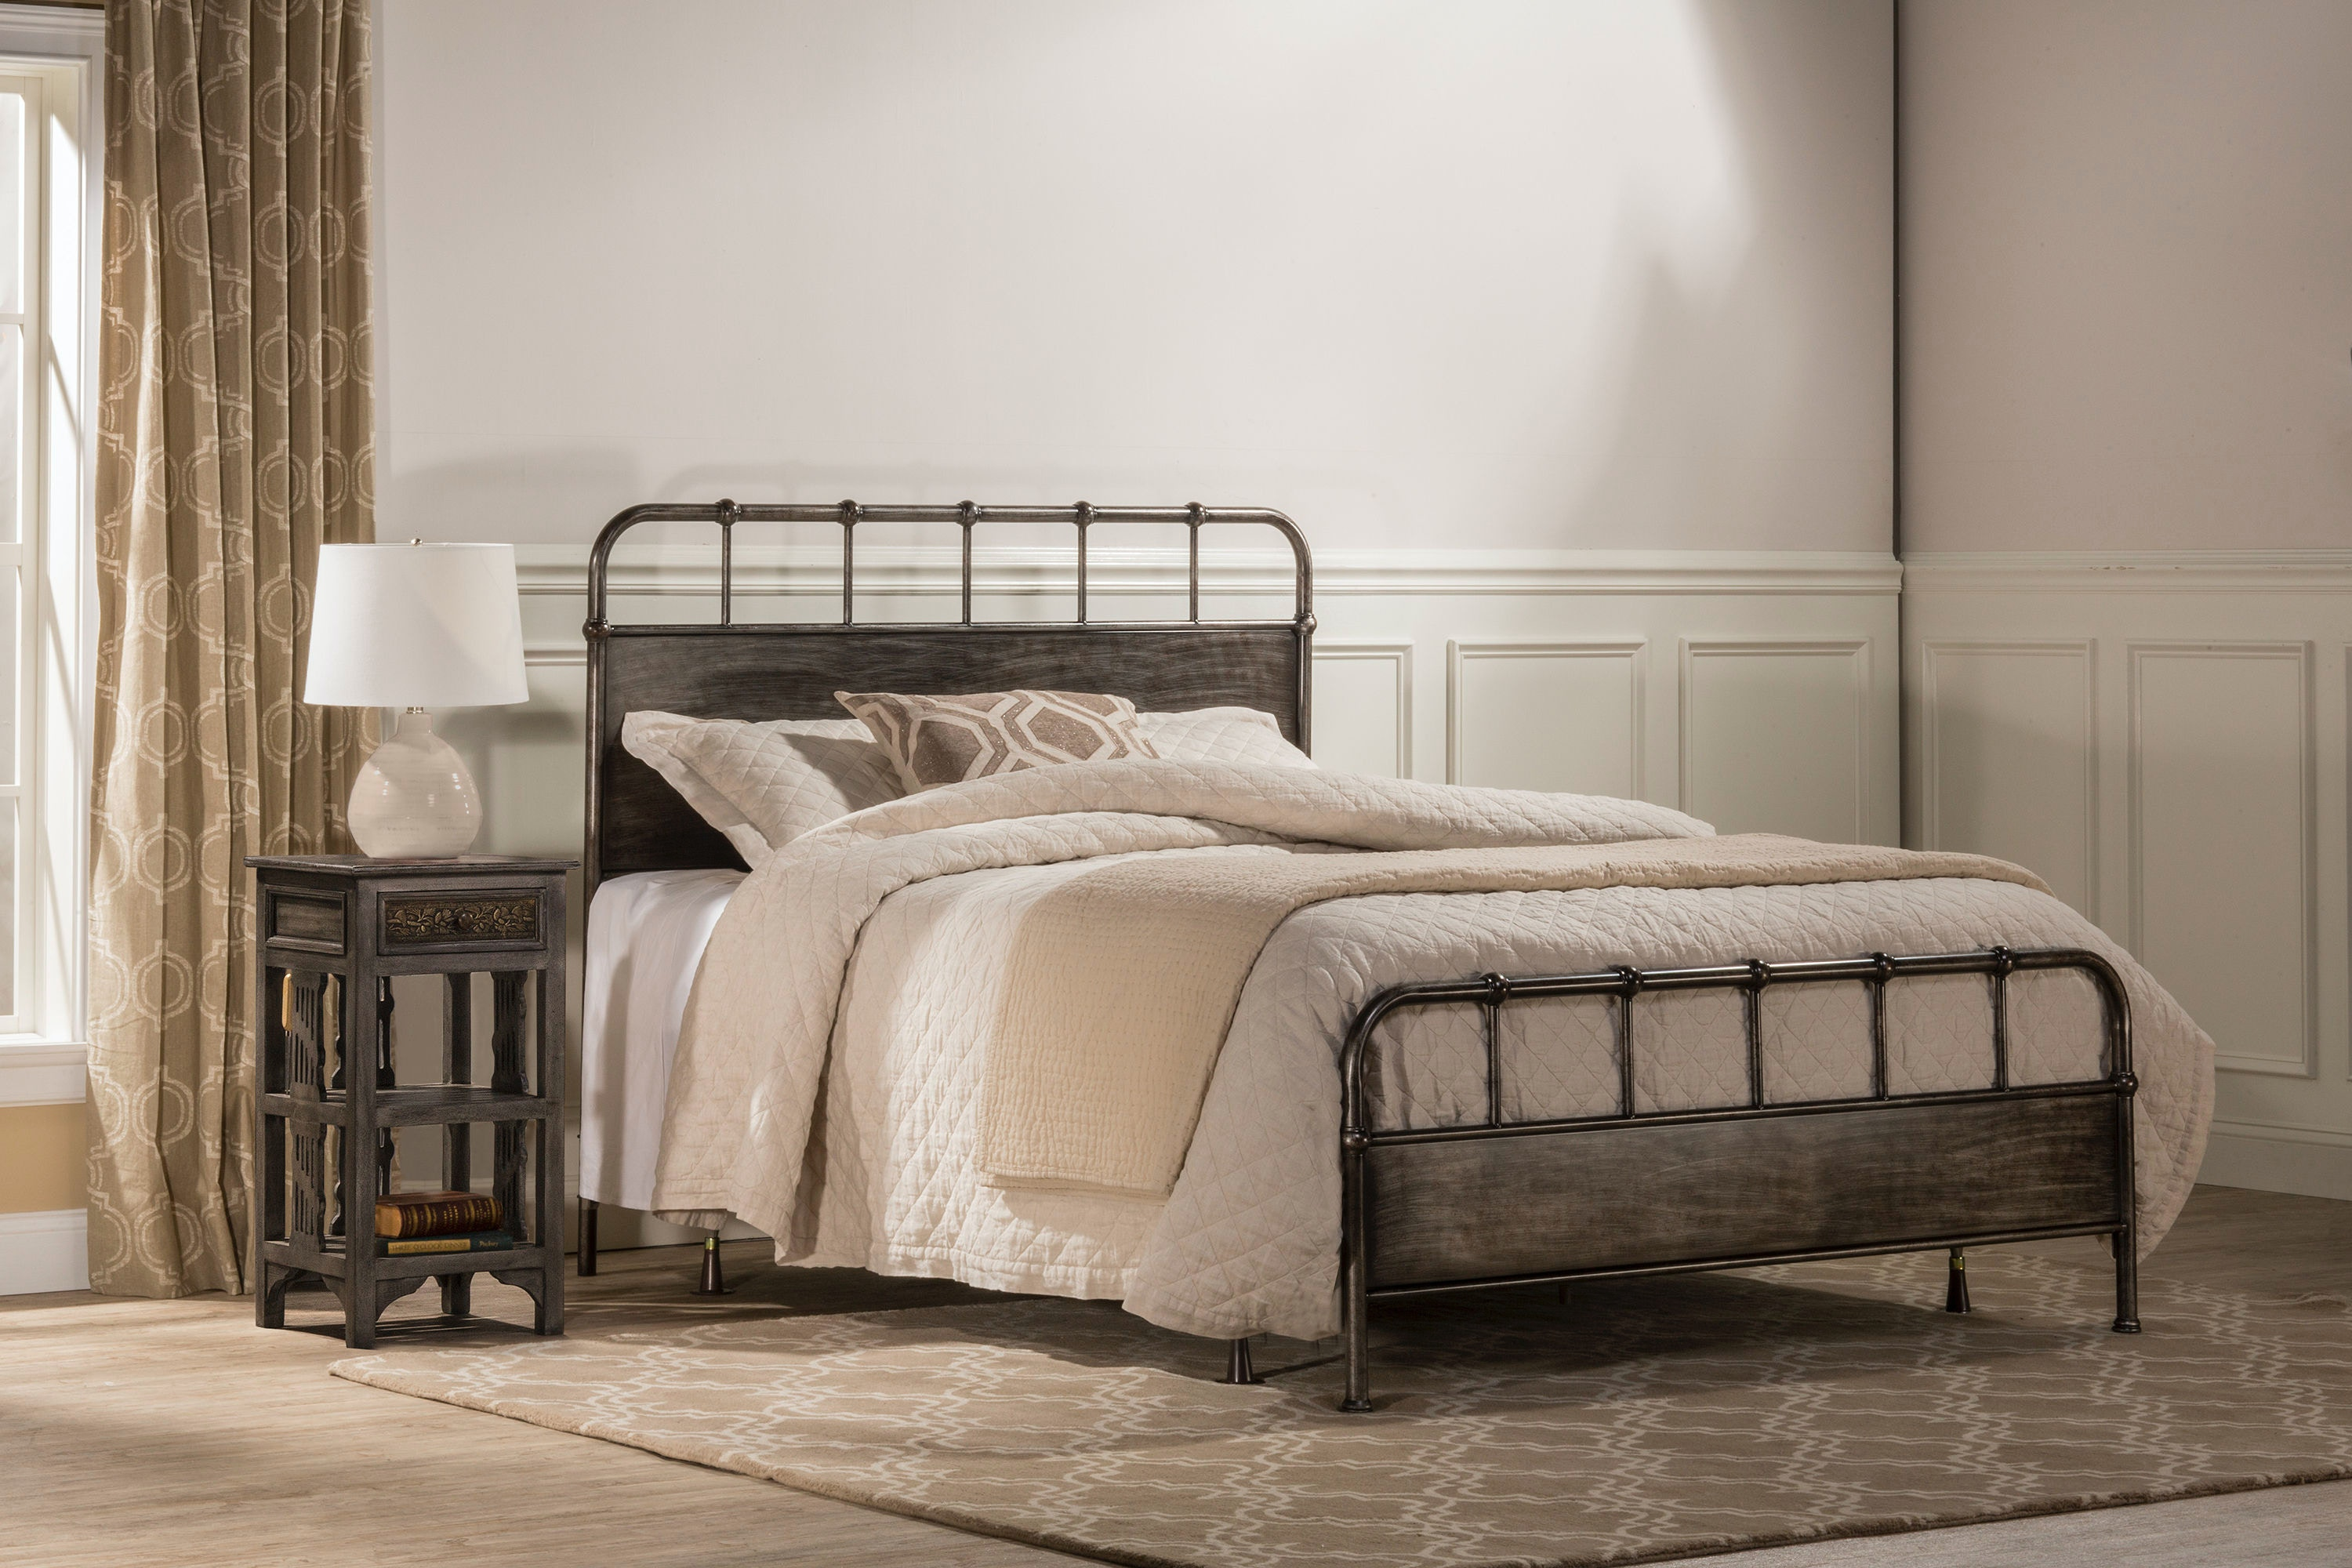 Charmant Hillsdale Furniture Bedroom Grayson Bed Set   King 1130 660   Furniture  Plus Inc.   Mesa, AZ